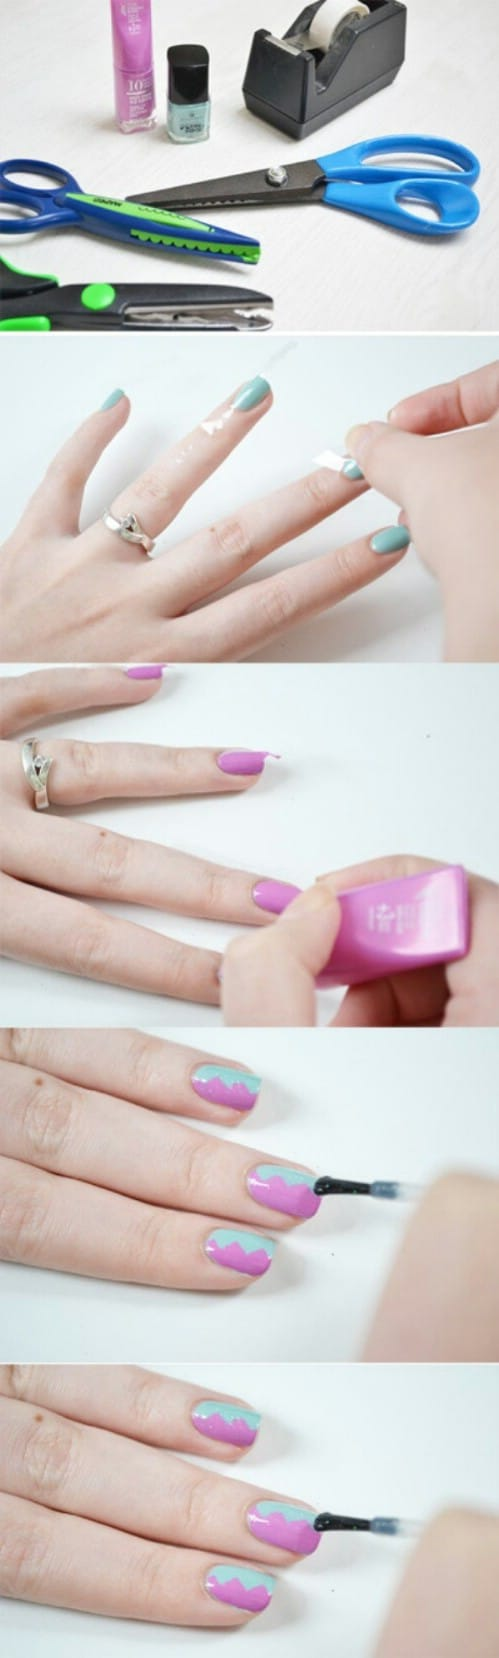 40 Diy Nail Art Hacks That Are Borderline Genius Diy Crafts